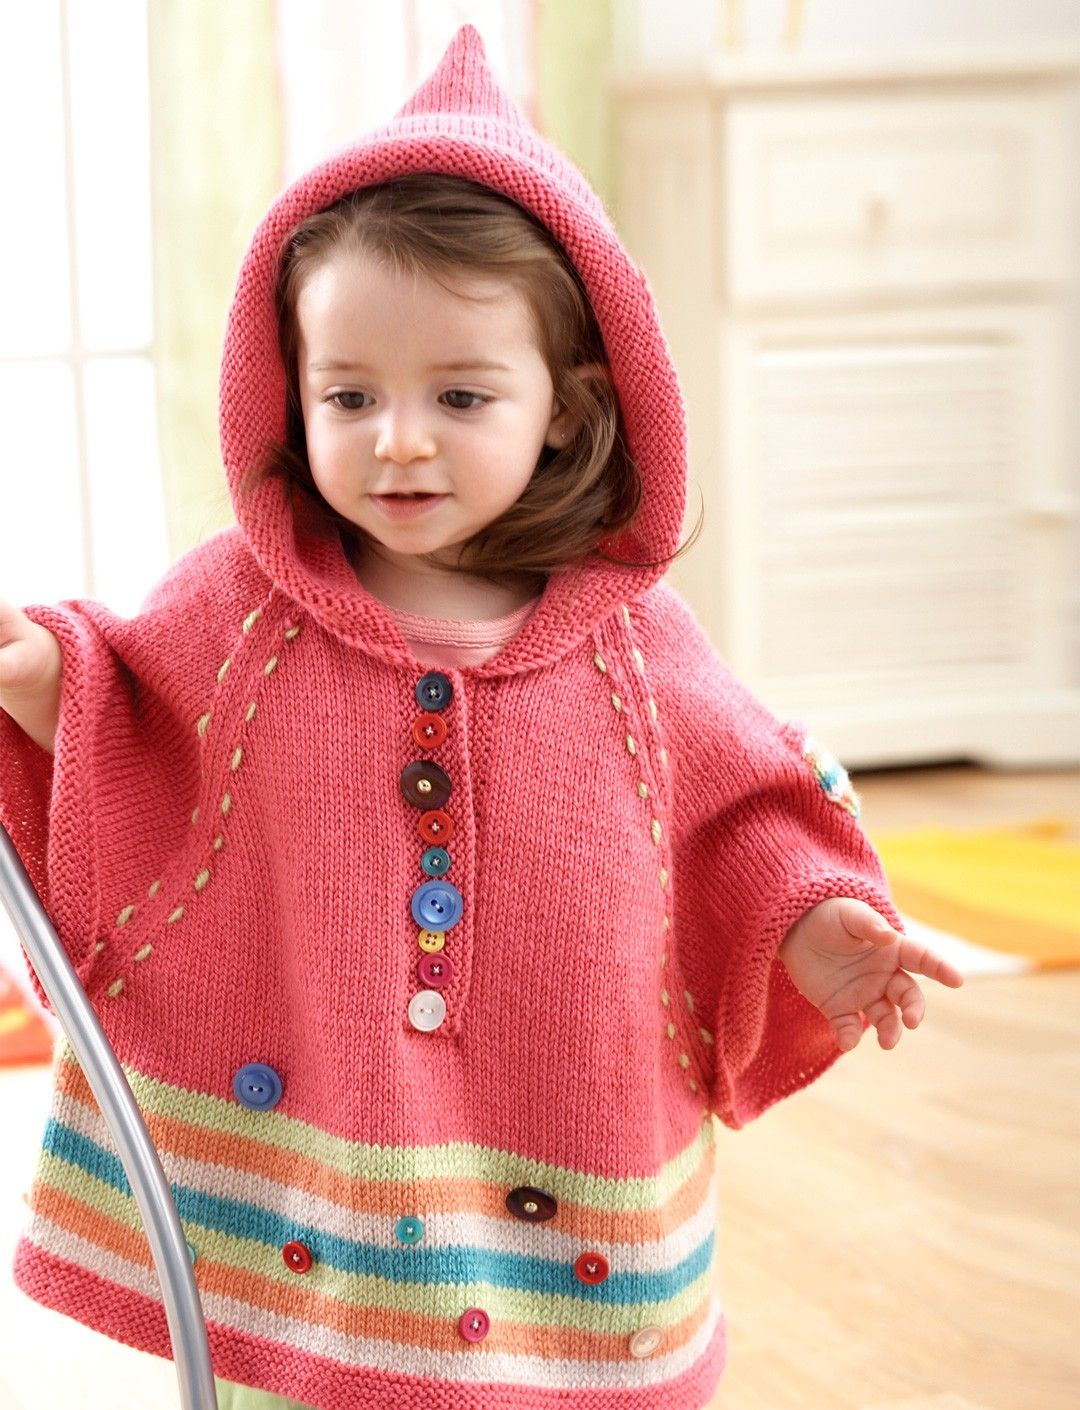 Bernat hooded poncho patterns 6 mos to 2 yrs easy found bernat hooded poncho patterns 6 mos to 2 yrs easy bankloansurffo Image collections